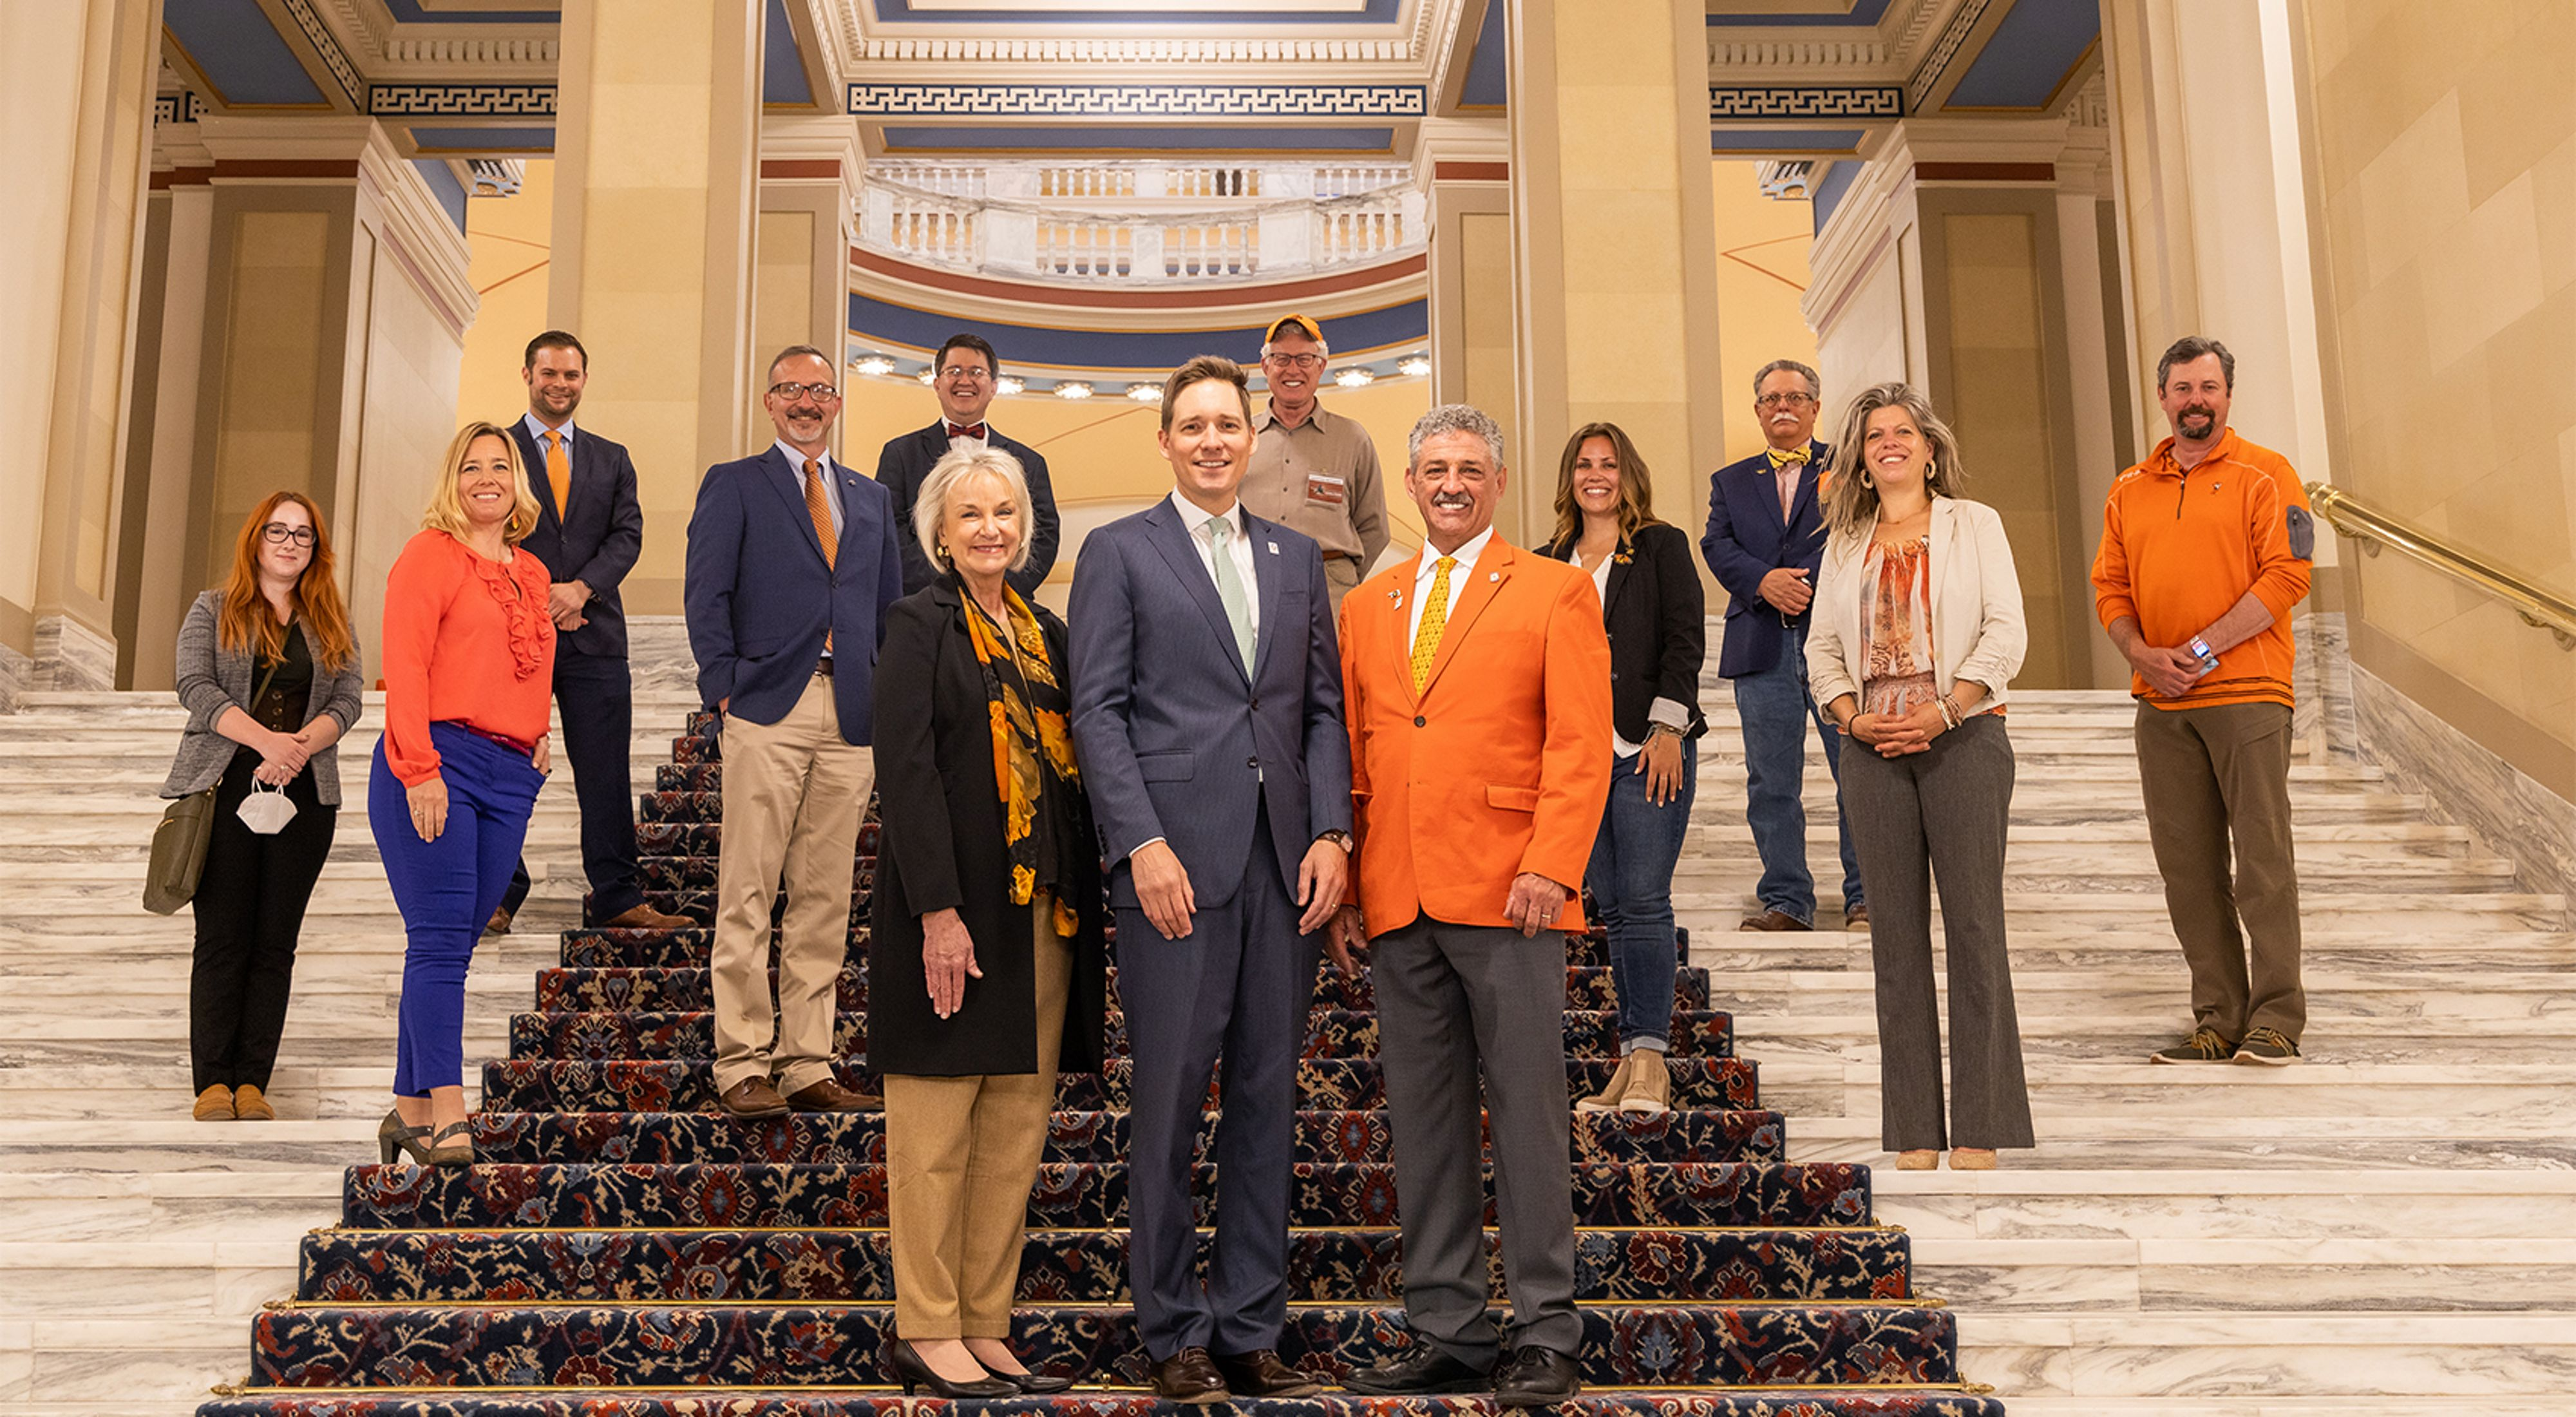 A group of about 15 people, with social distancing, many wearing orange, standing and posing for the camera on marble steps at the state capitol.